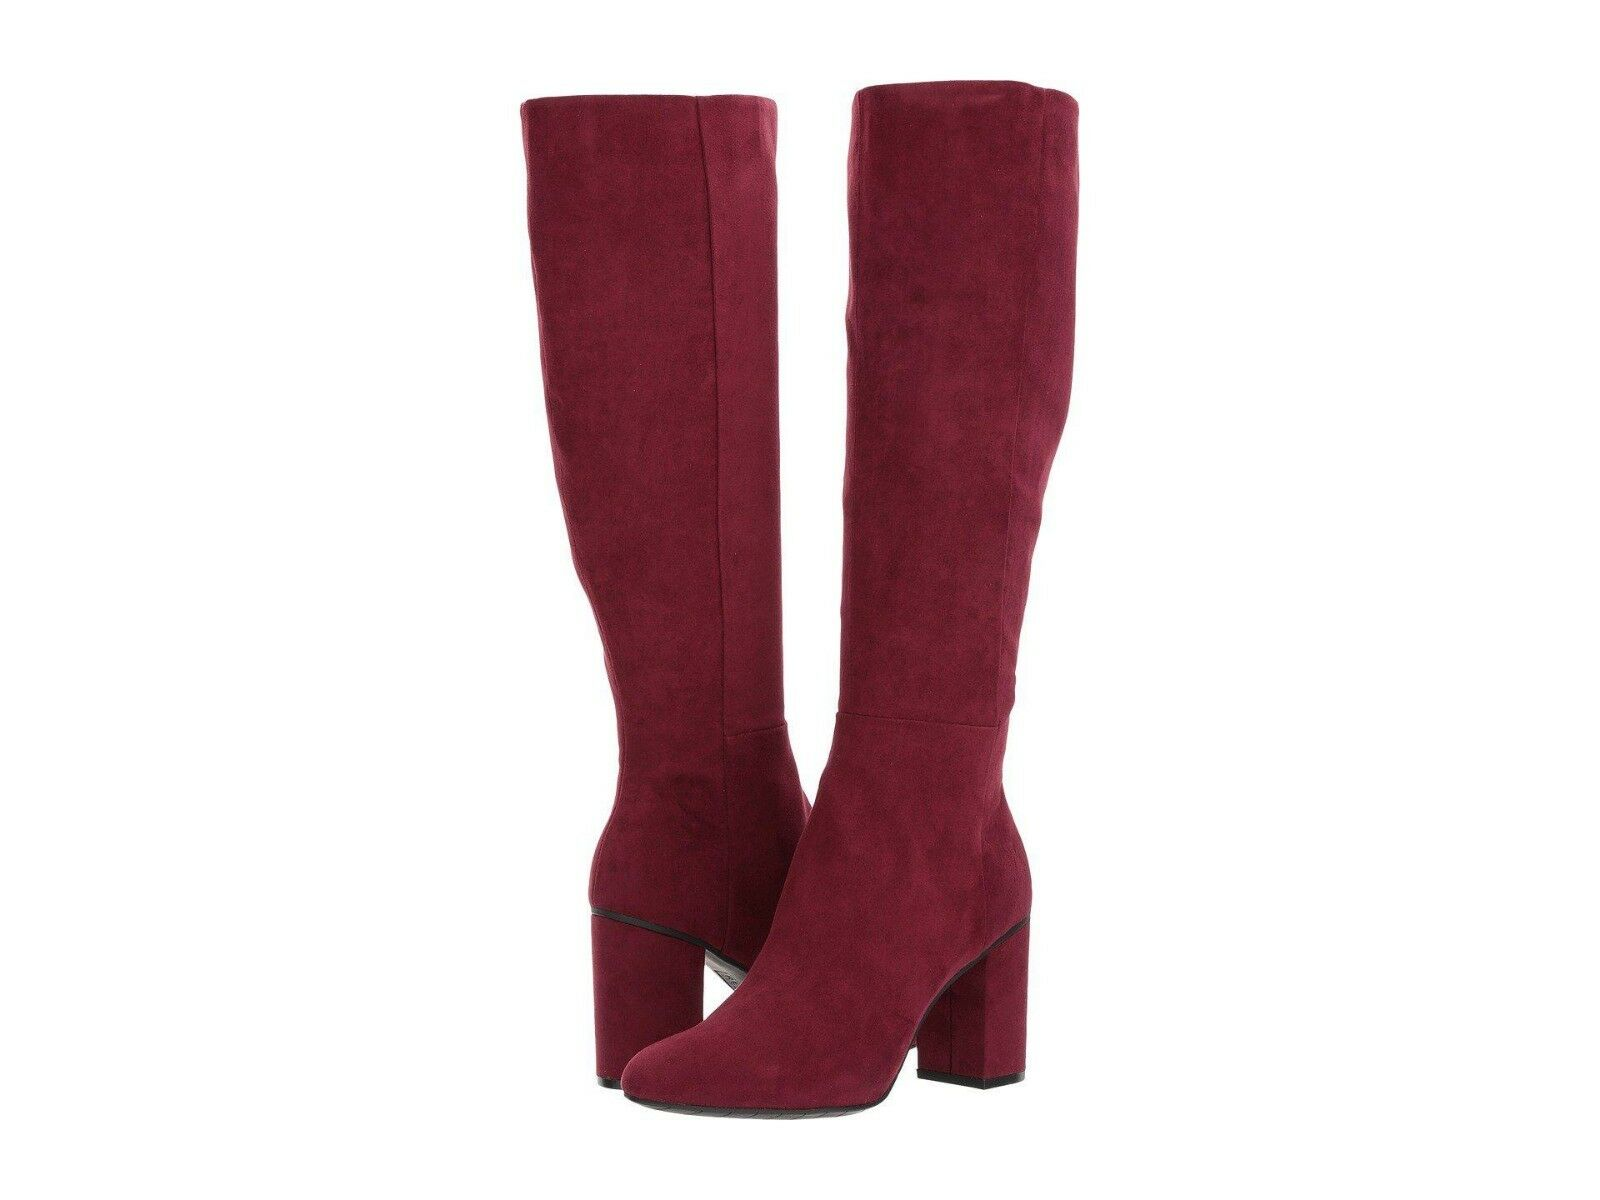 Womens Kenneth Cole Reaction Boots Time To Step Tall Knee High Burgundy Zip 9